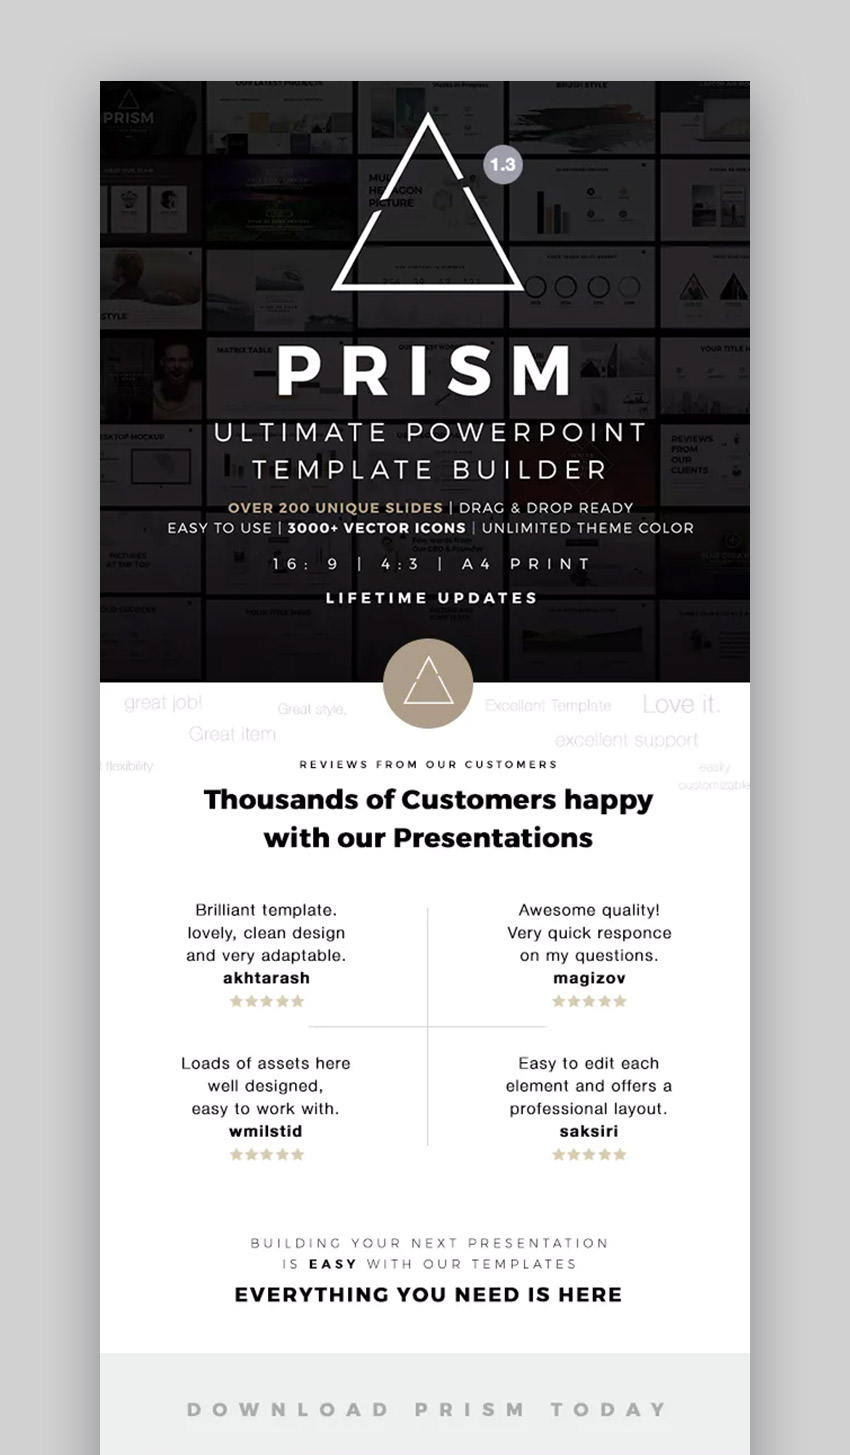 25 PPT Templates: To Make Simple Modern PowerPoint Presentations in 2019